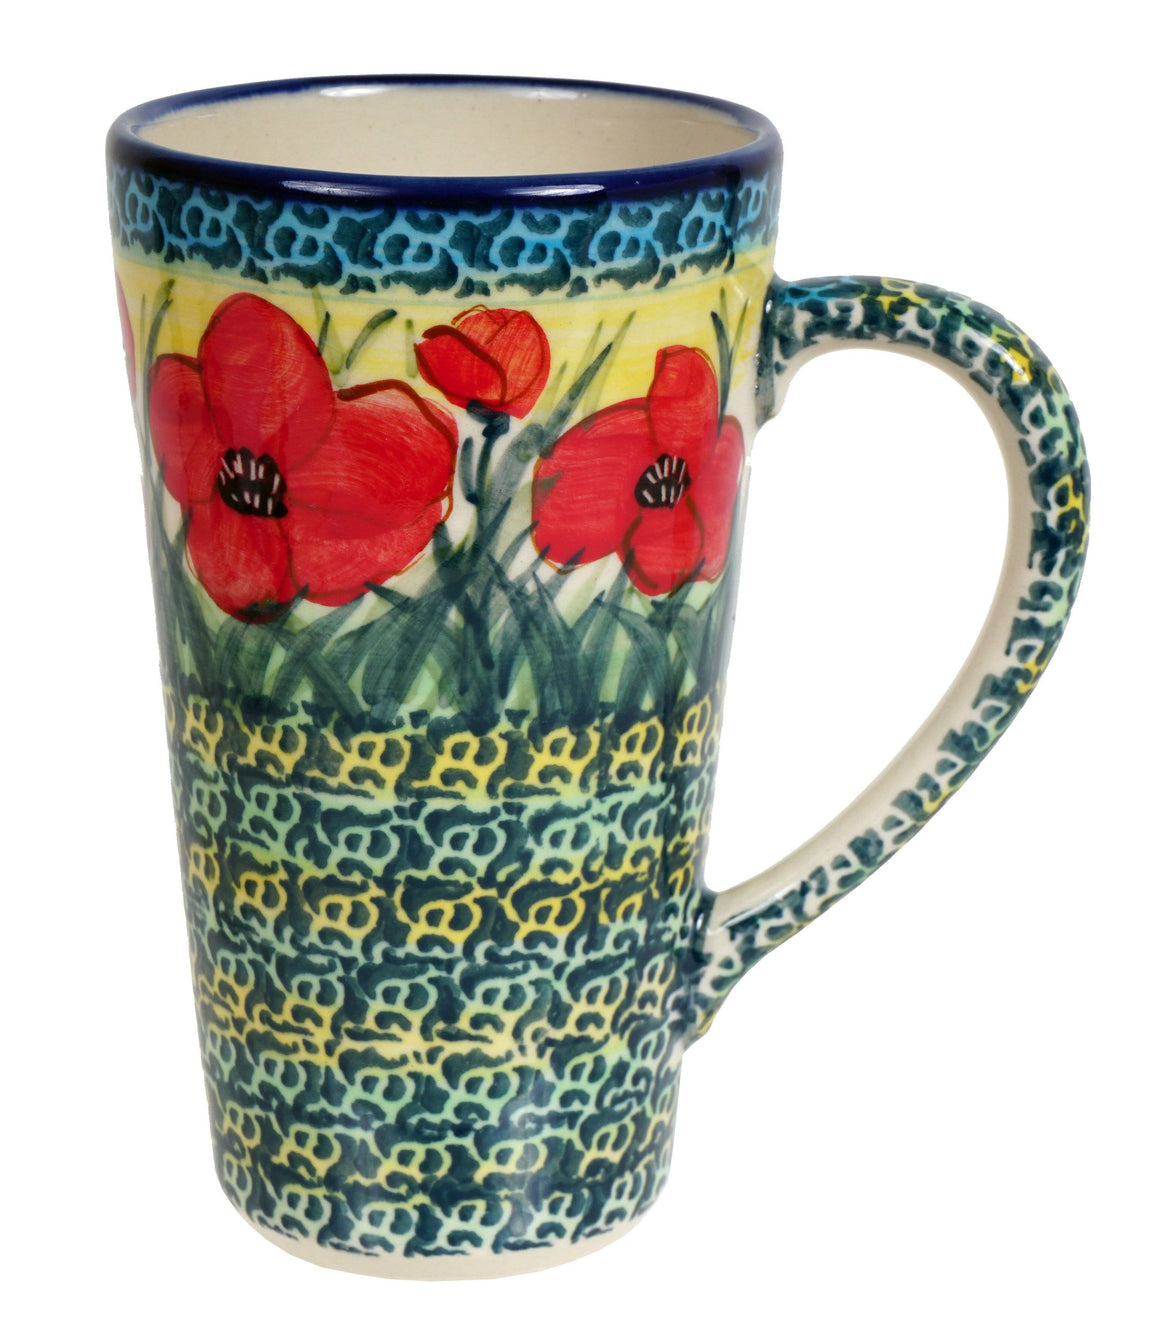 John's Mug (Poppies in Bloom)